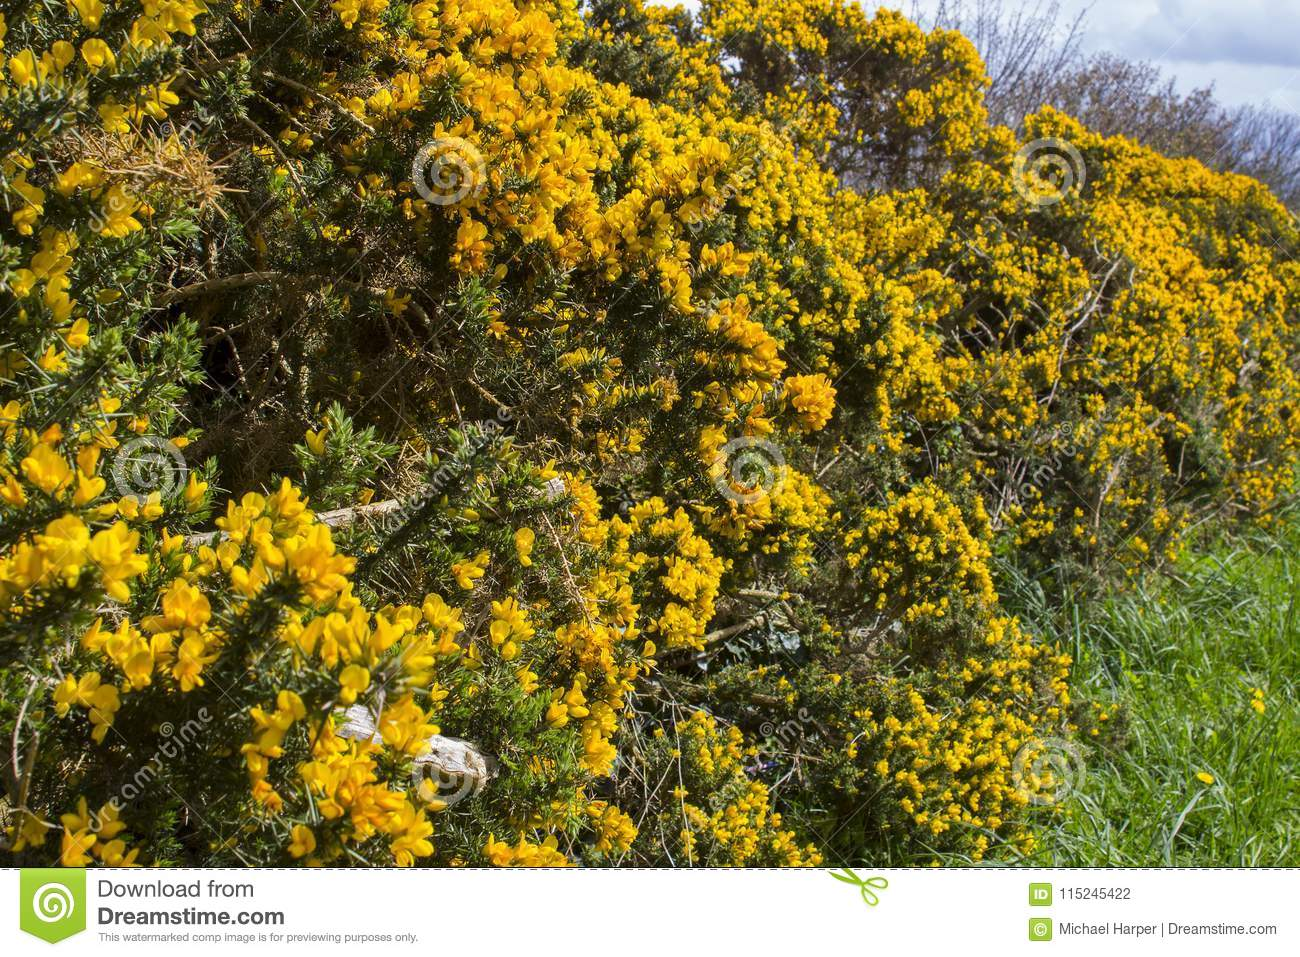 Yellow Flowers On A Common Whin Bush Or Gorse Displaying Their Full